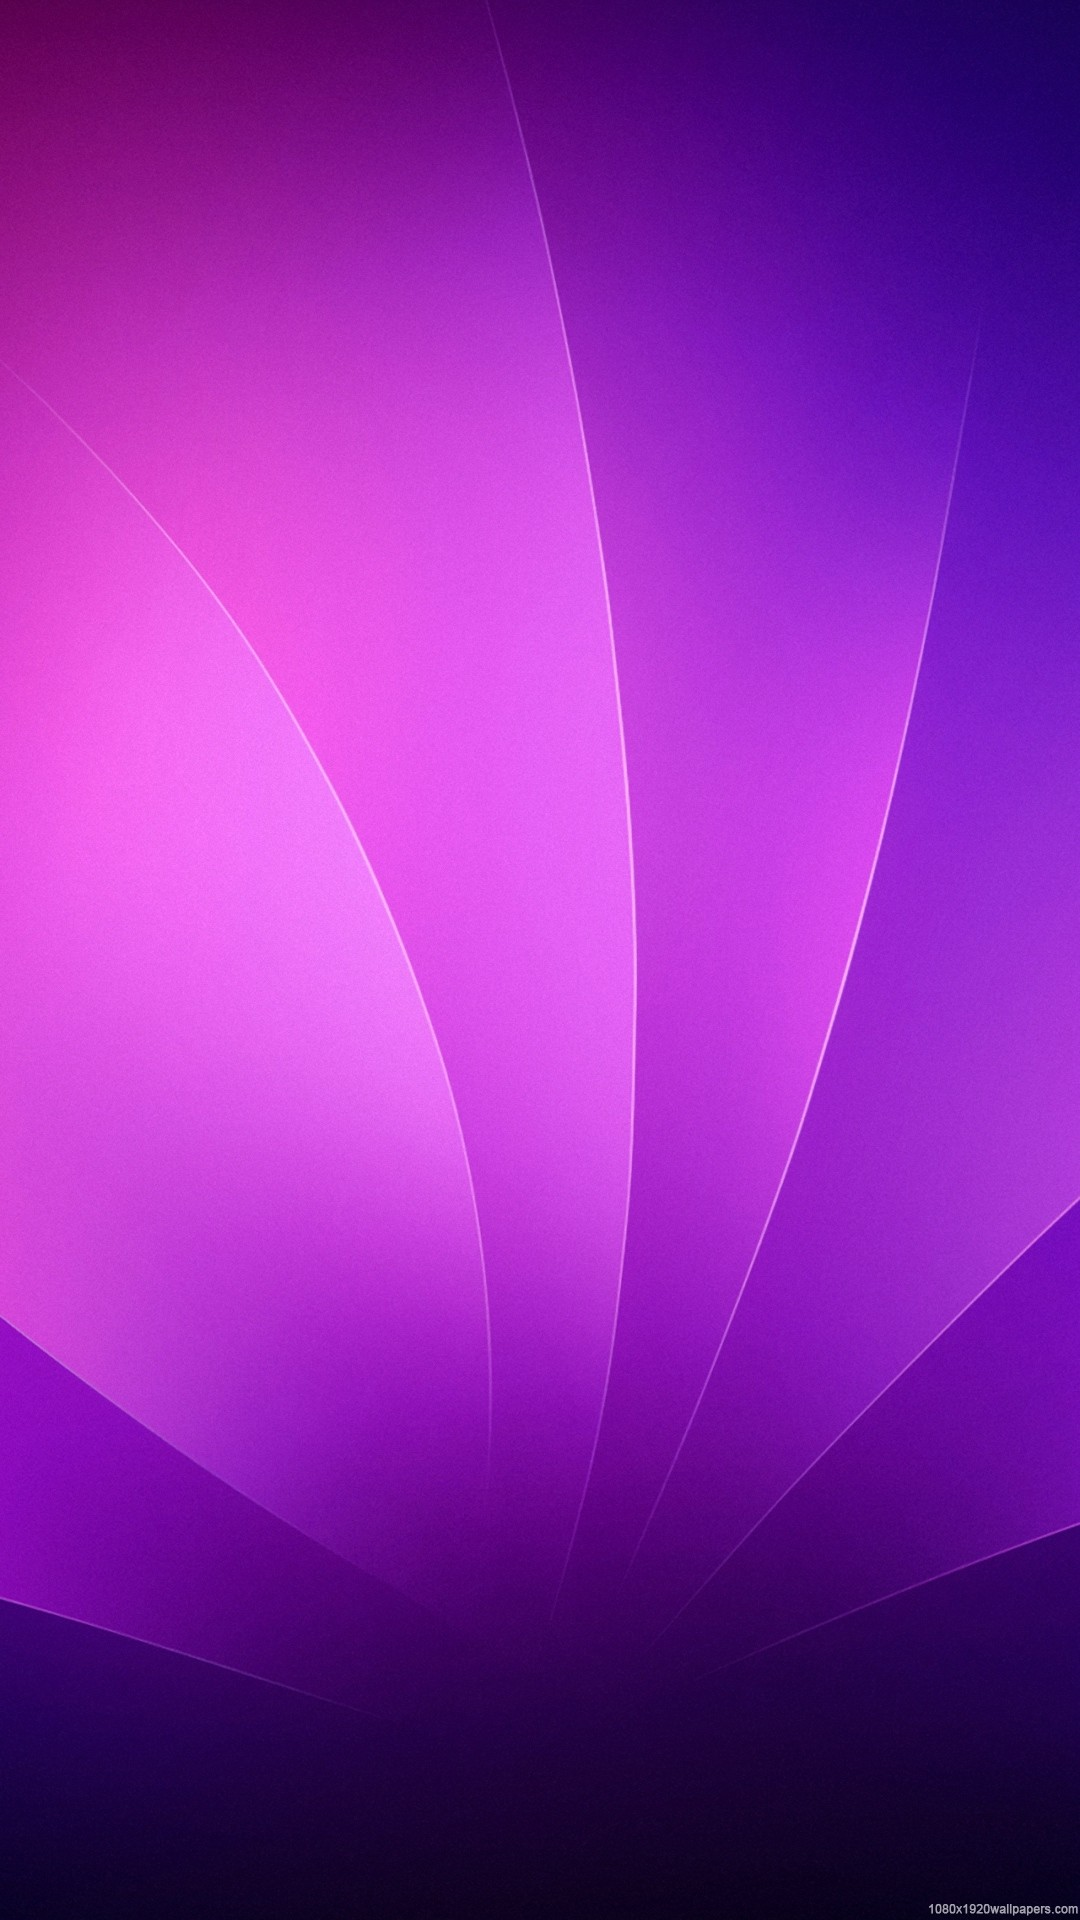 1080x1920 1080×1920-leaves-line-abstract-purple-HD-1080P-abstract-wallpaper-wp400721